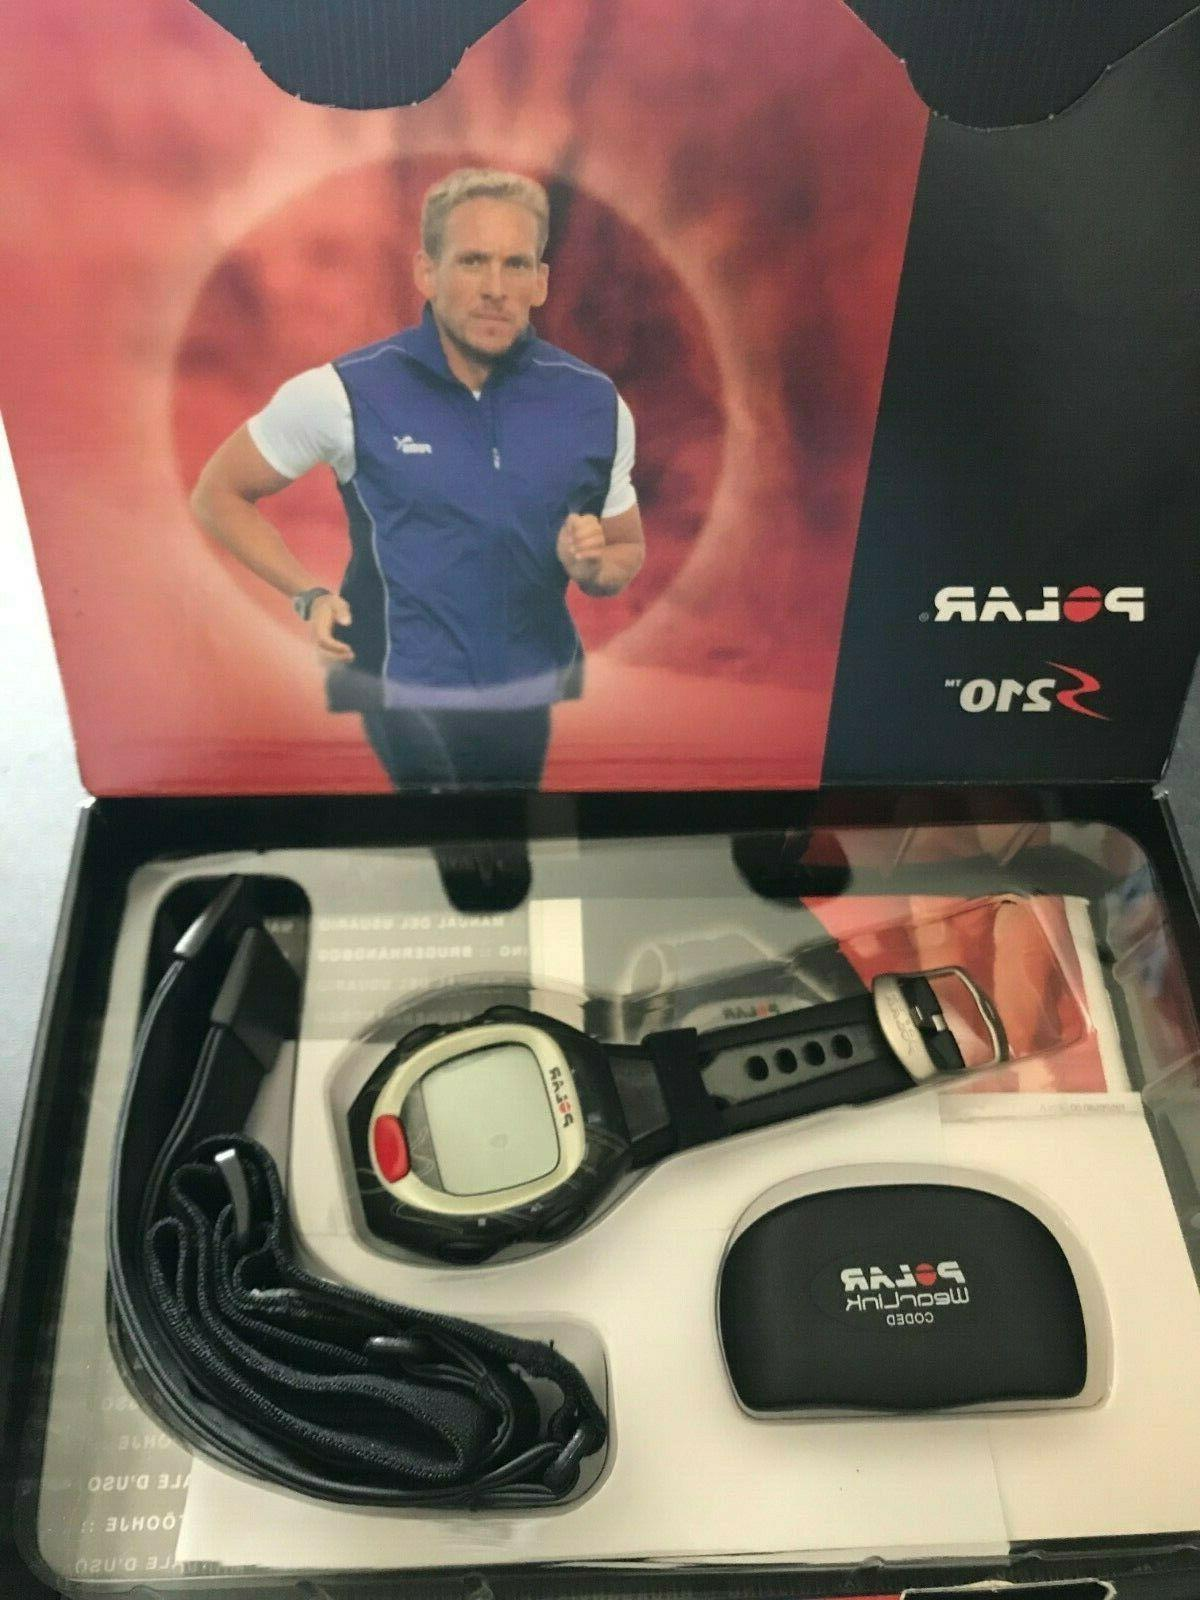 s210 heart rate monitor new in opened